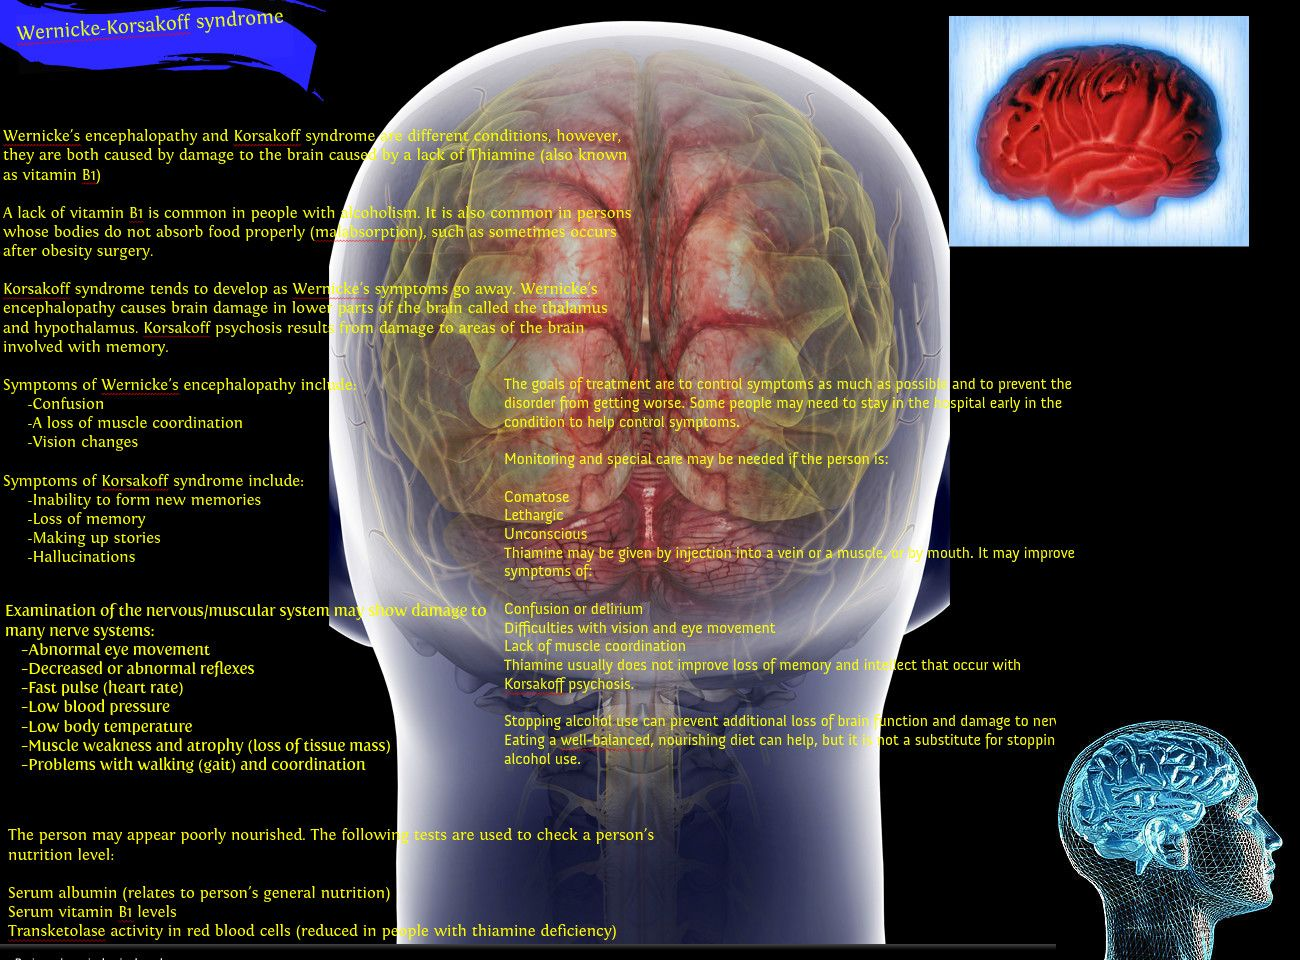 wernickes encephalopathy essay The purpose of this pictorial essay is to present the computed tomography (ct) and magnetic resonance imaging (mri) findings of wernicke's encephalopathy, a rare, severe, acute neurological syndrome due to thiamine (vitamin b1) deficiency.